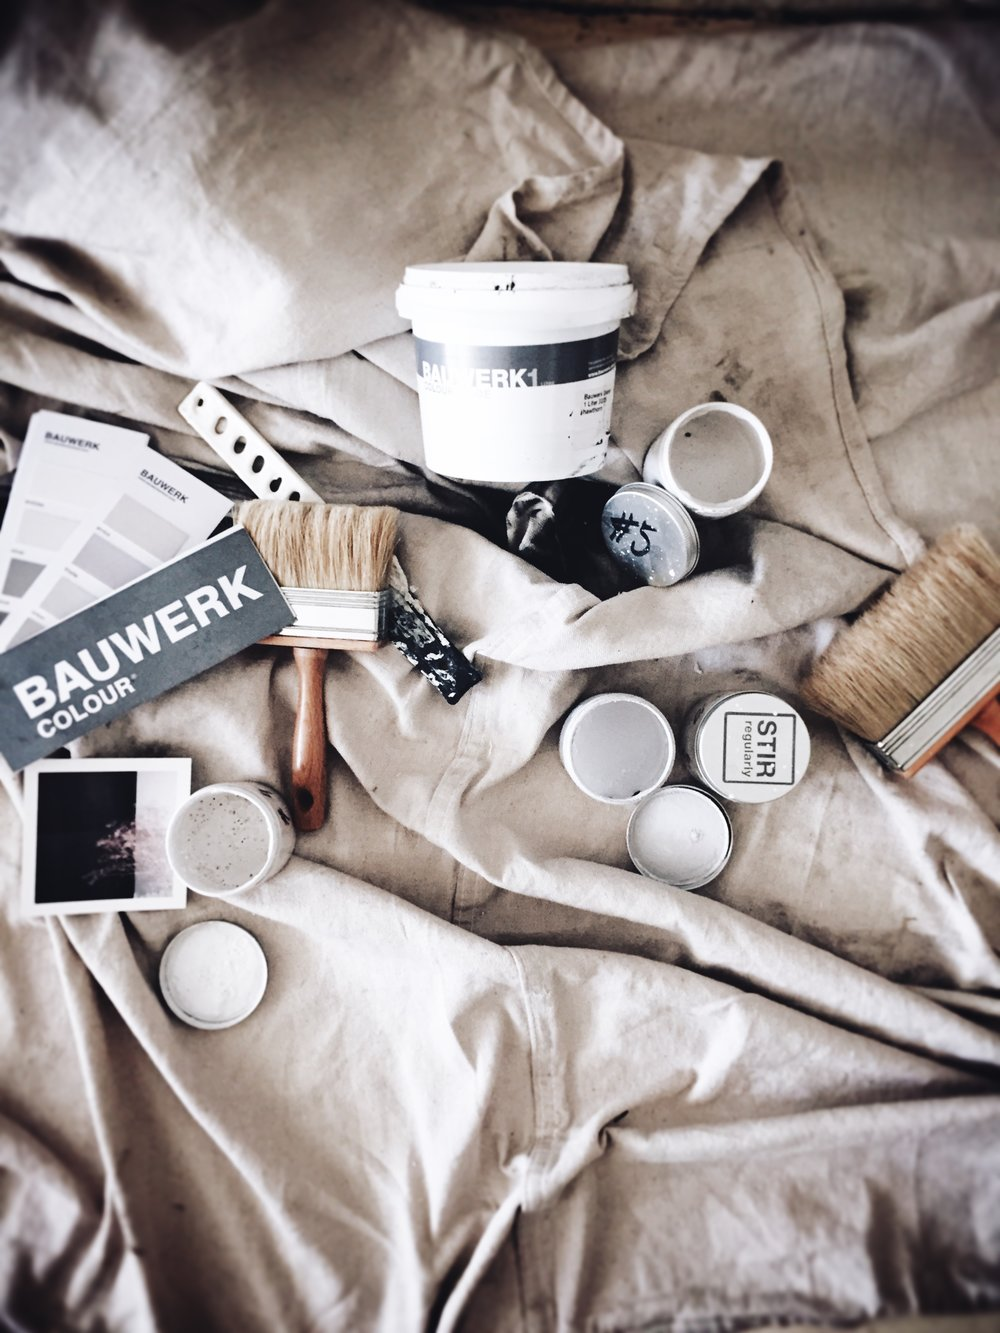 Lynda Gardener's paint range 'White' with boutique paint company  Bauwerk .